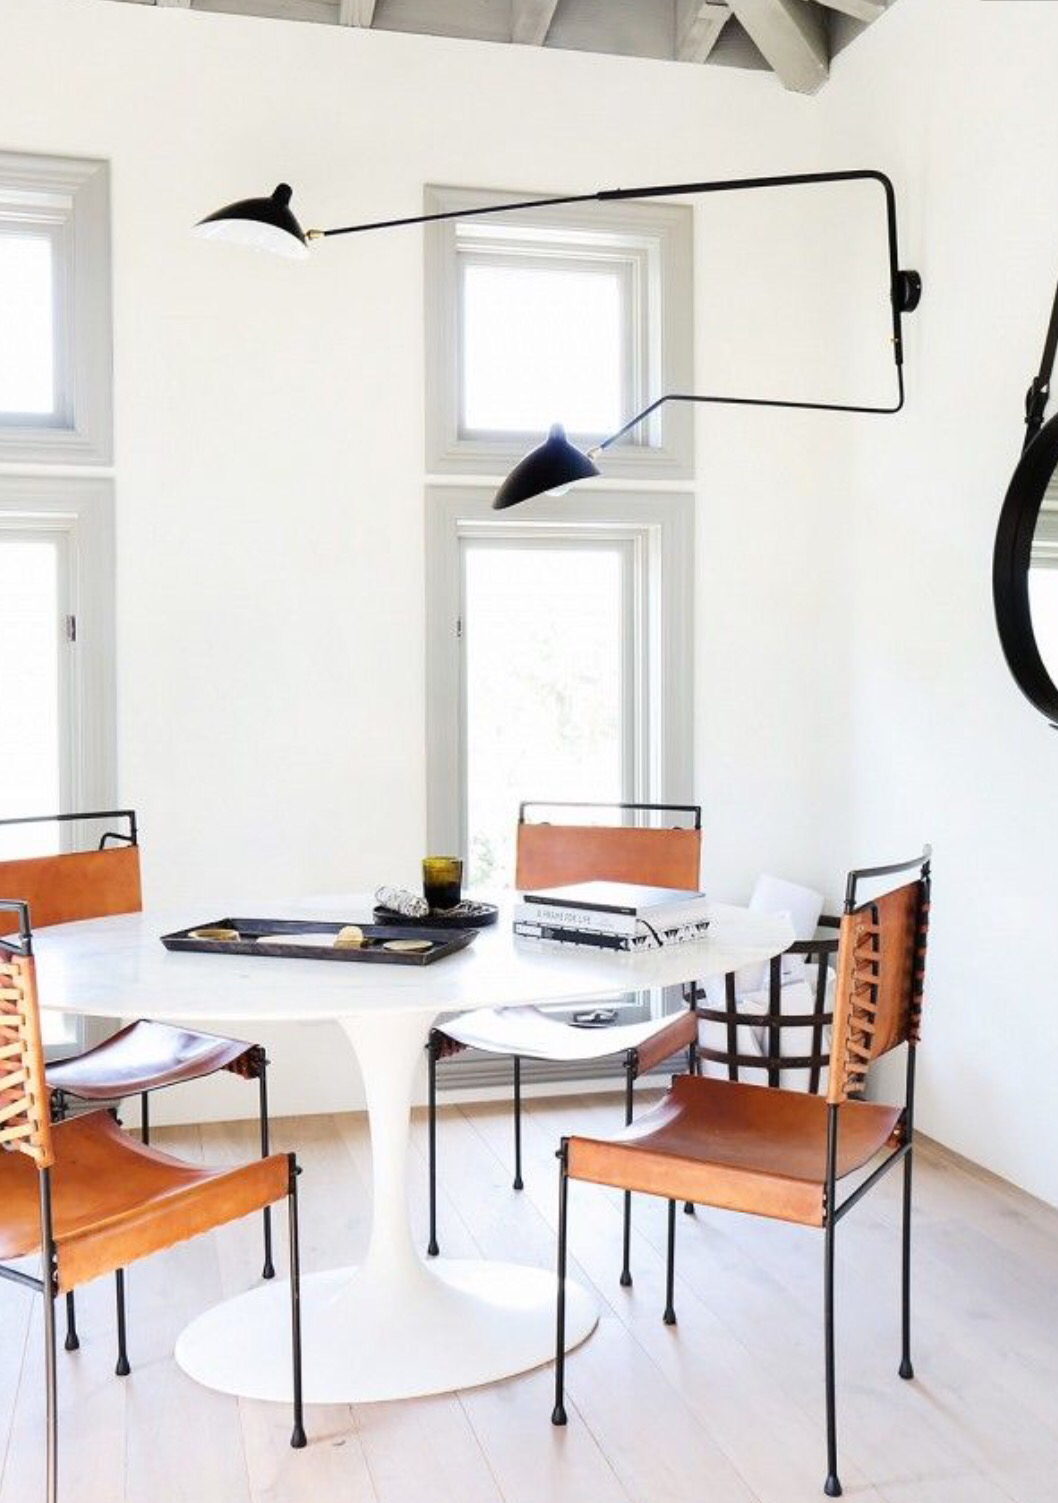 Http://www.mydomaine.com/vanessa Alexander Malibu Home/slide21. This Is My  New Favorite Application. A Wall Lamp Reaching Out Over A Dining Table?